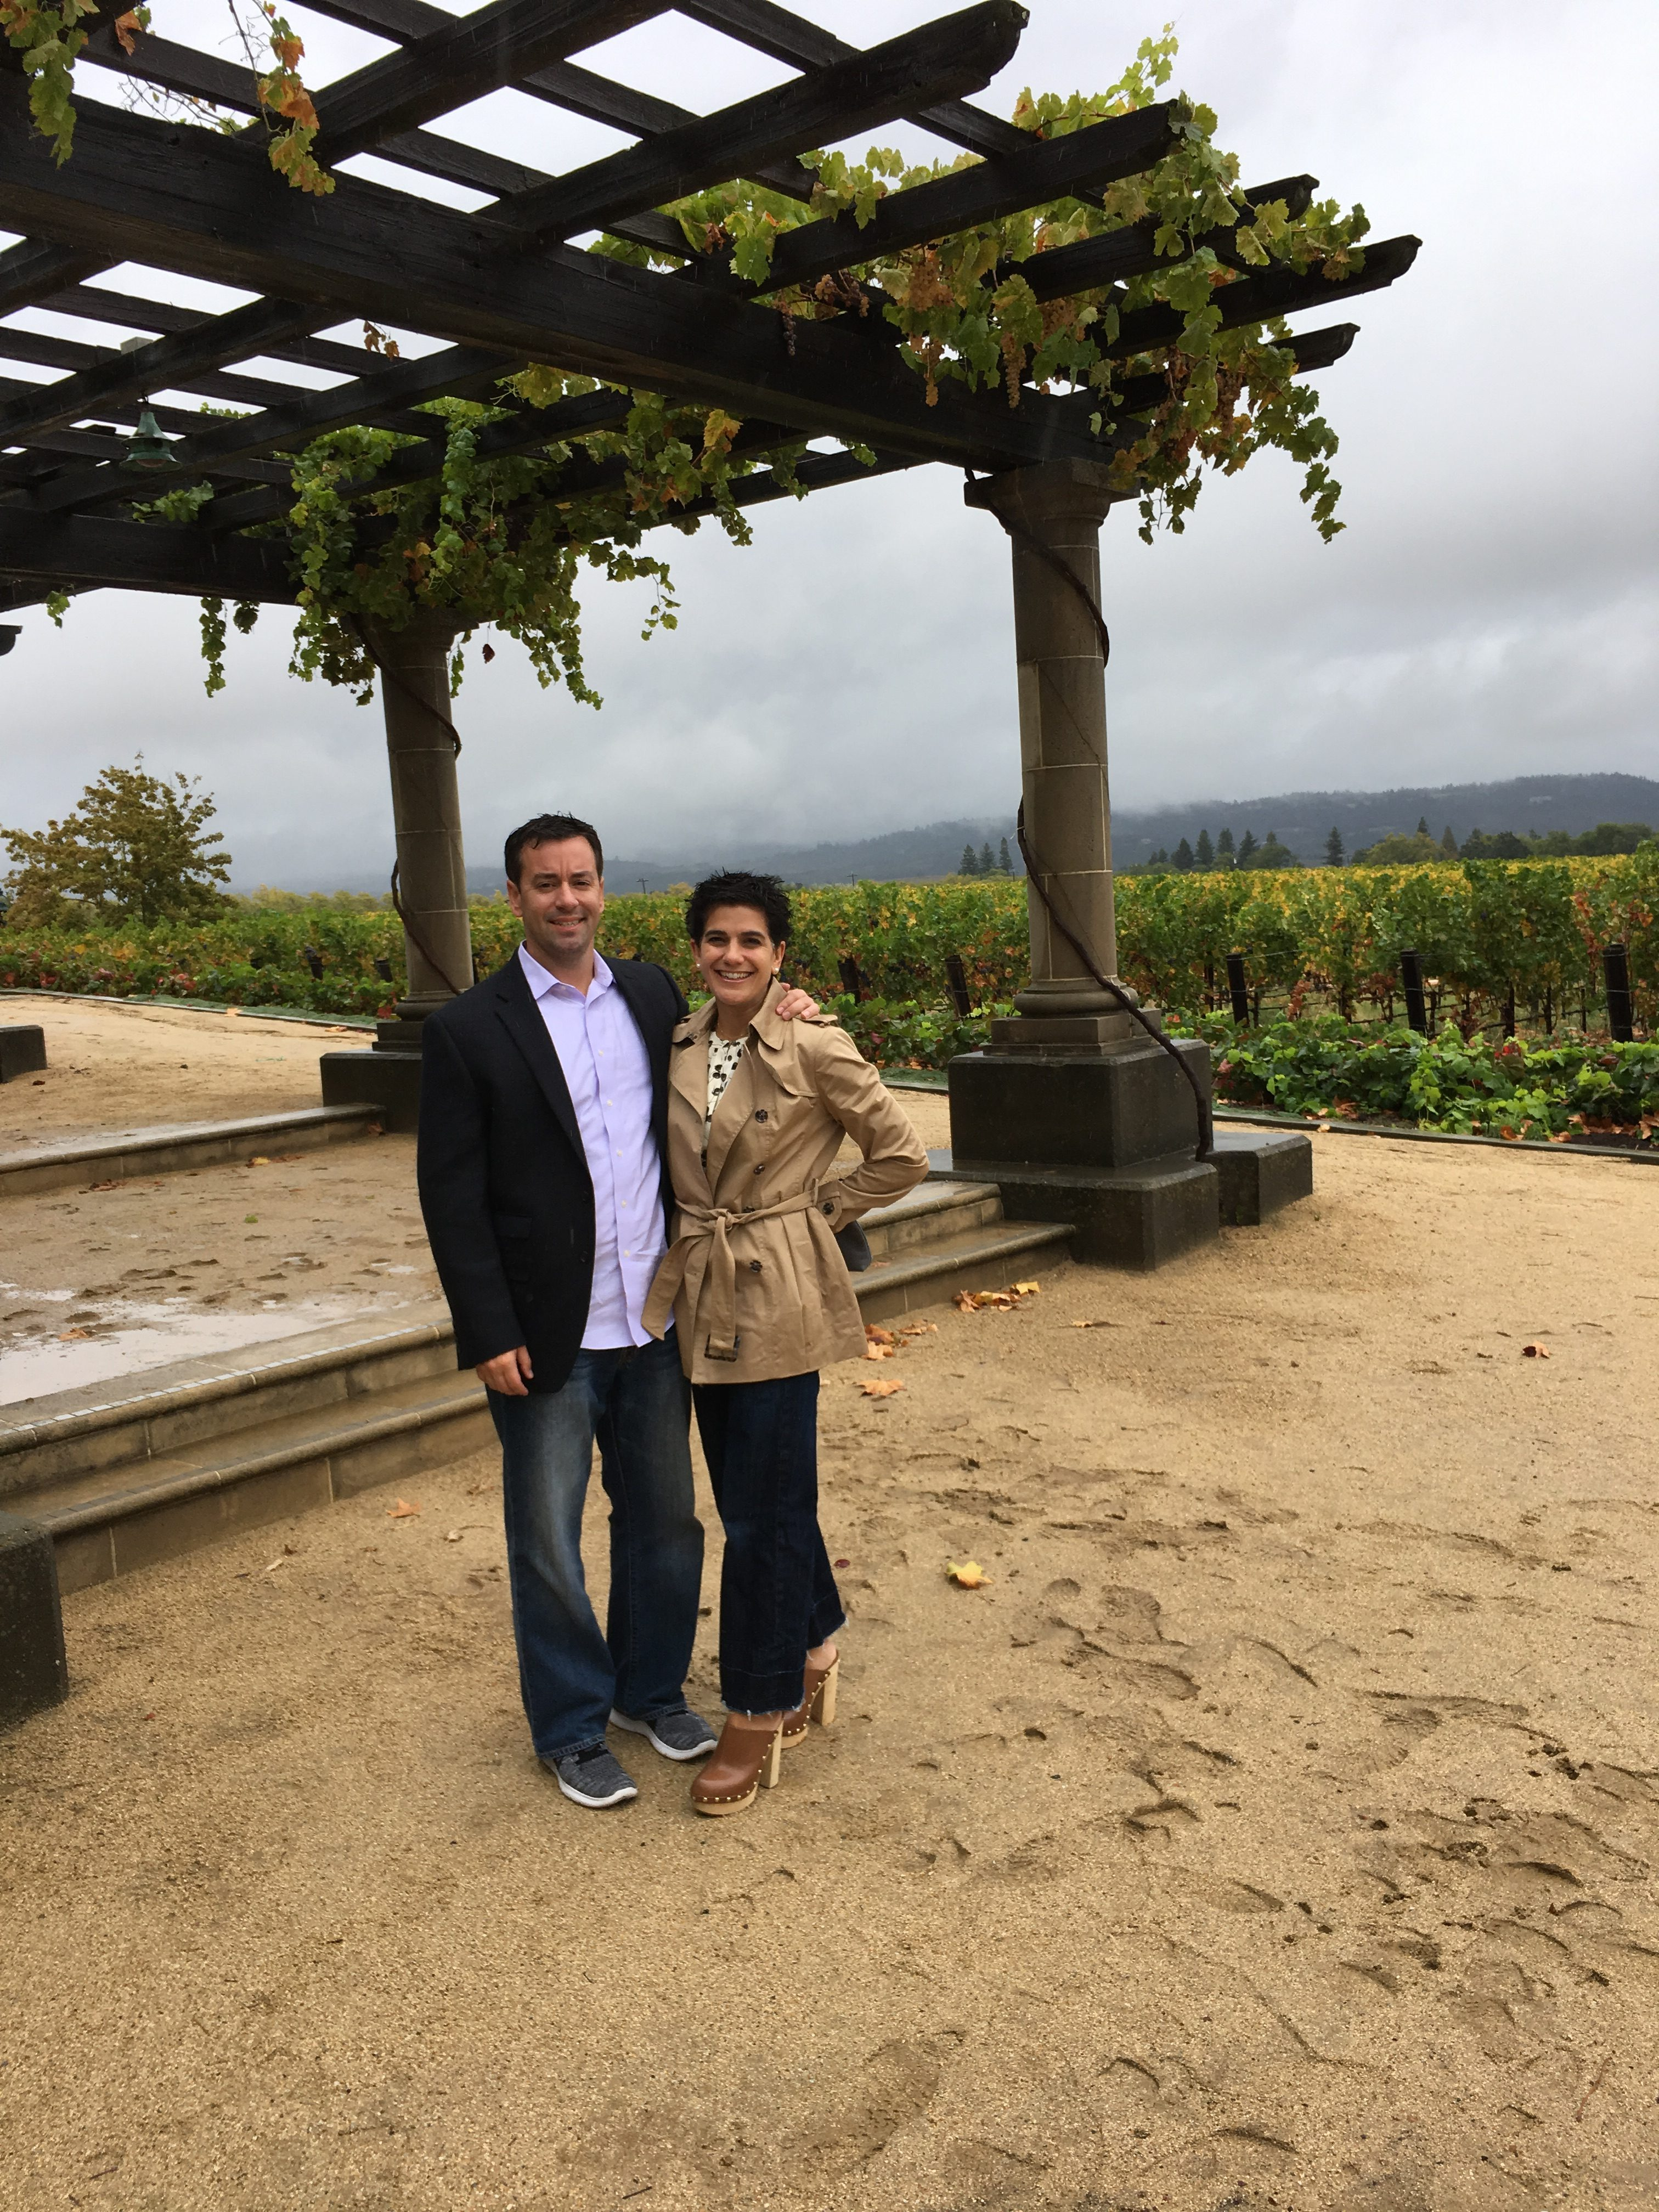 Just hanging out in the rain with my husband at Inglenook winery.